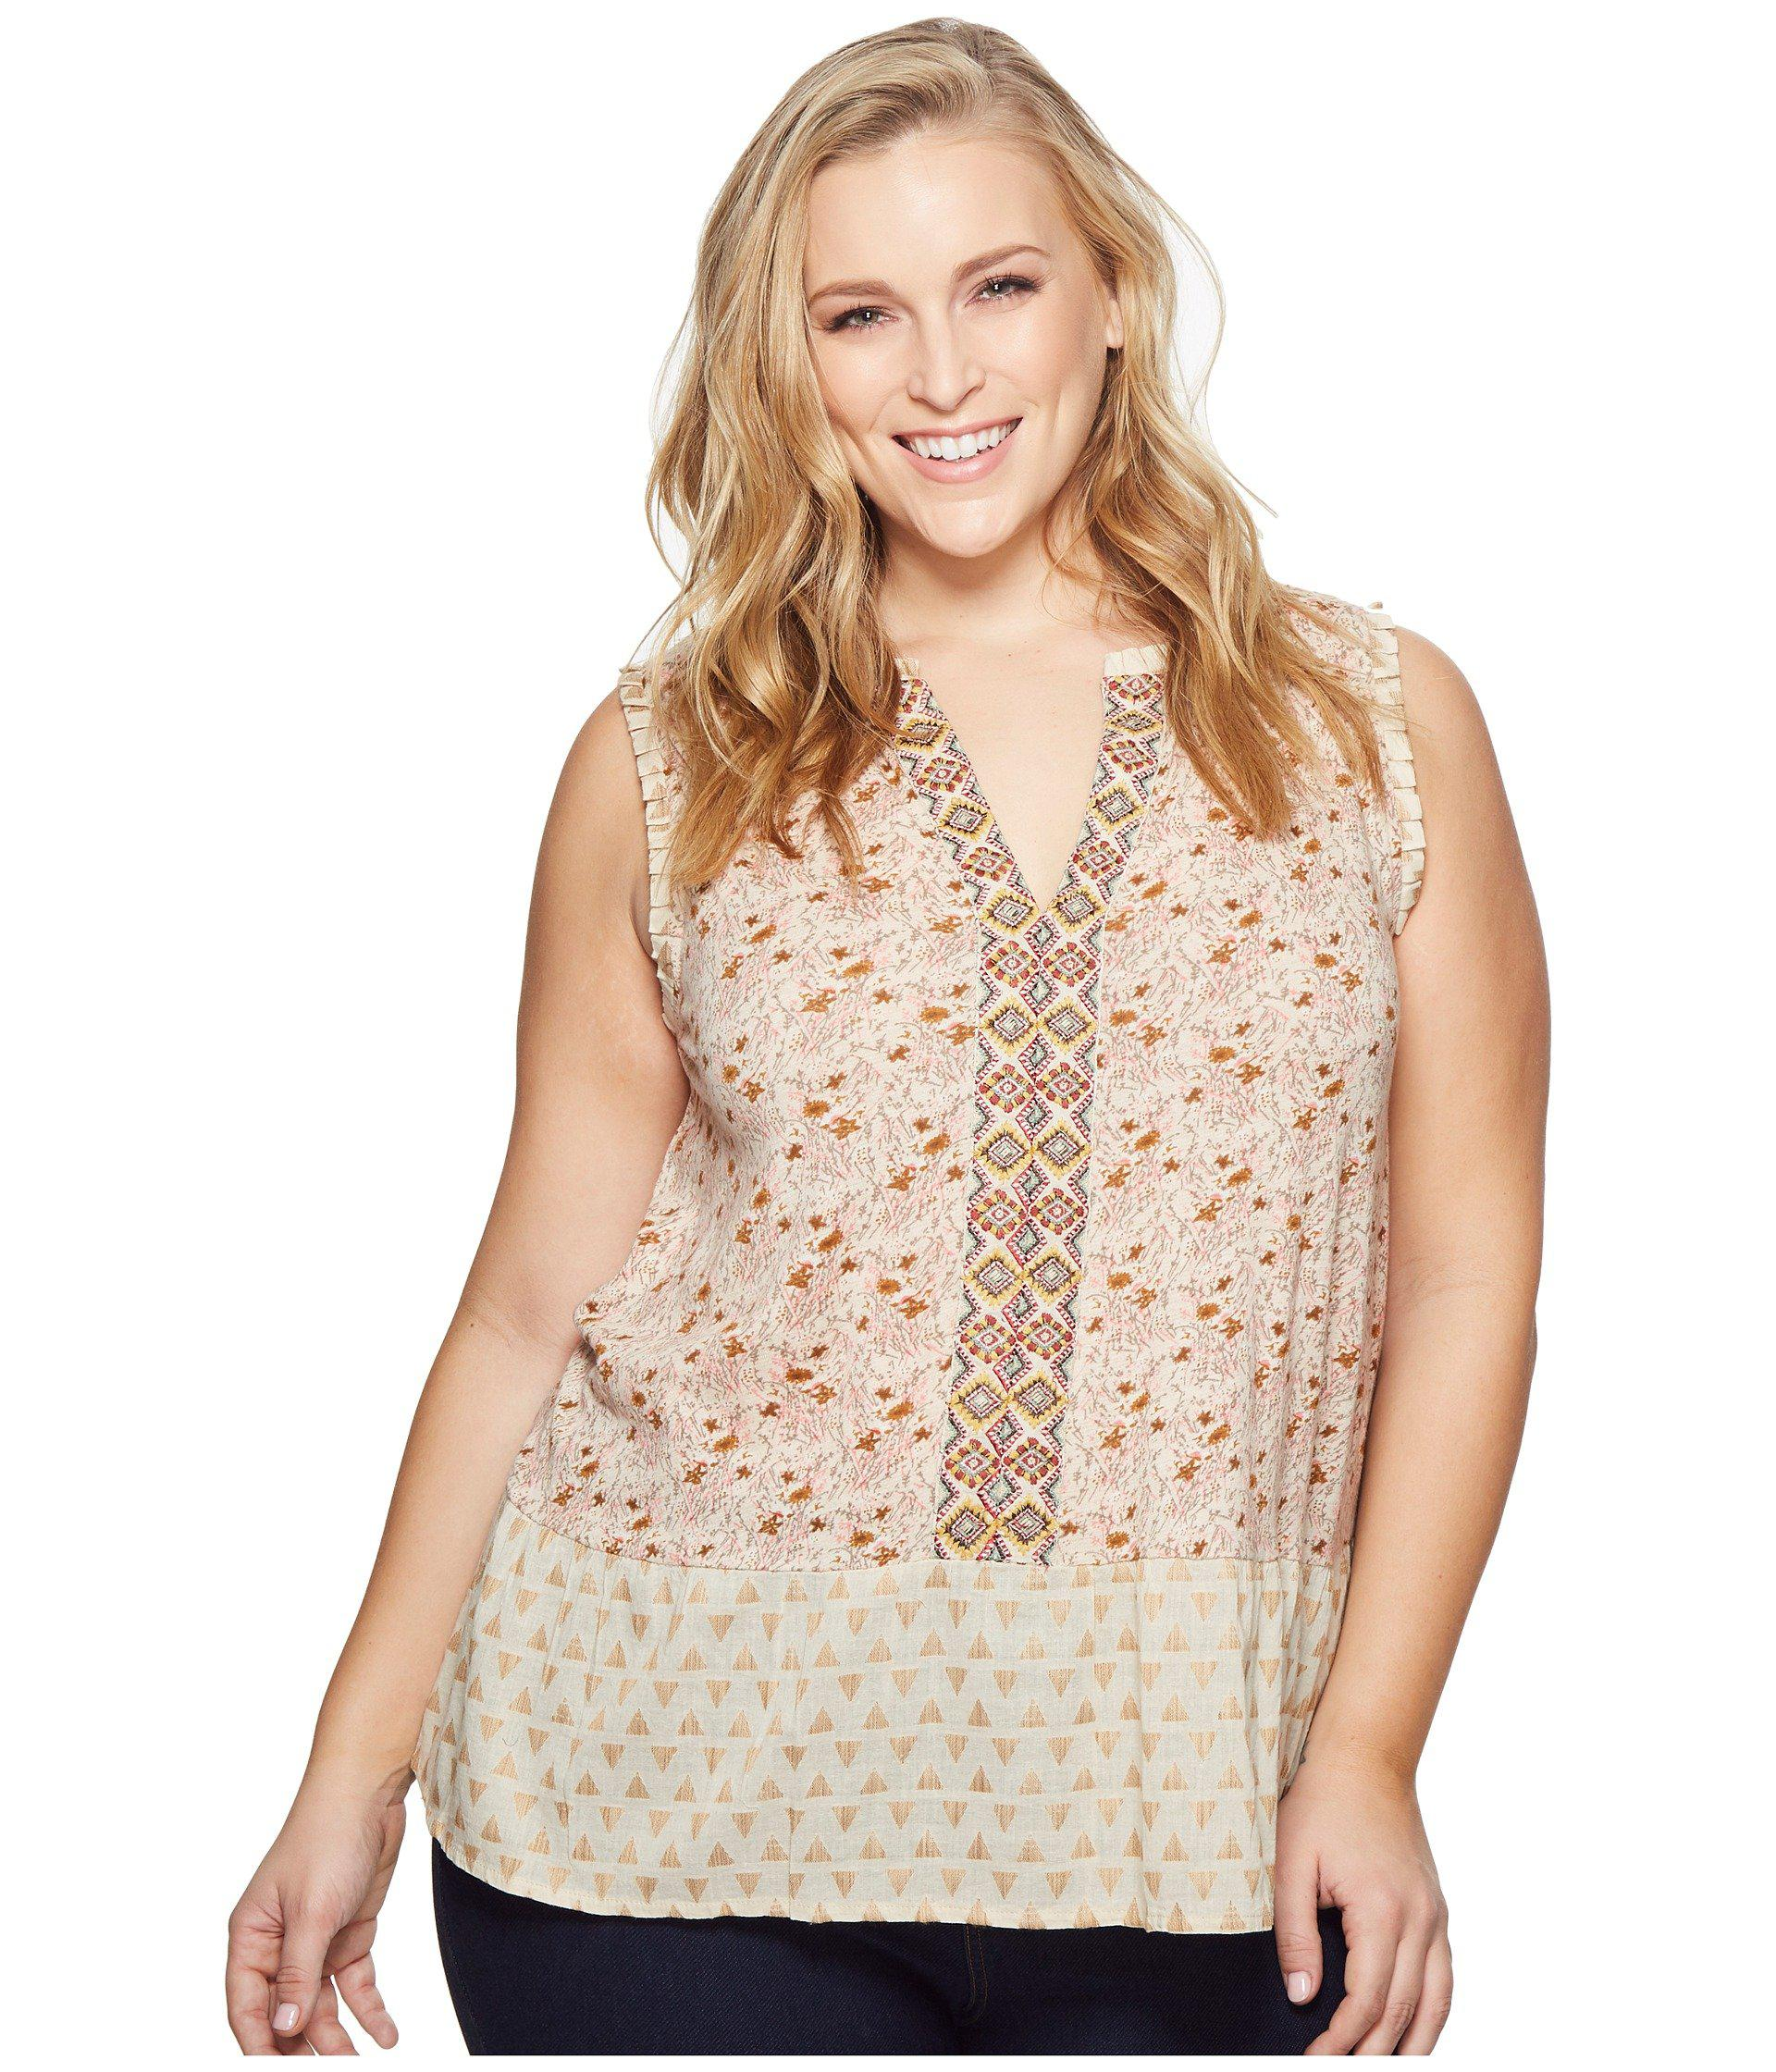 dd63d37bff6 Lyst - Lucky Brand Plus Size Mix Print Peplum Top in Natural - Save 51%